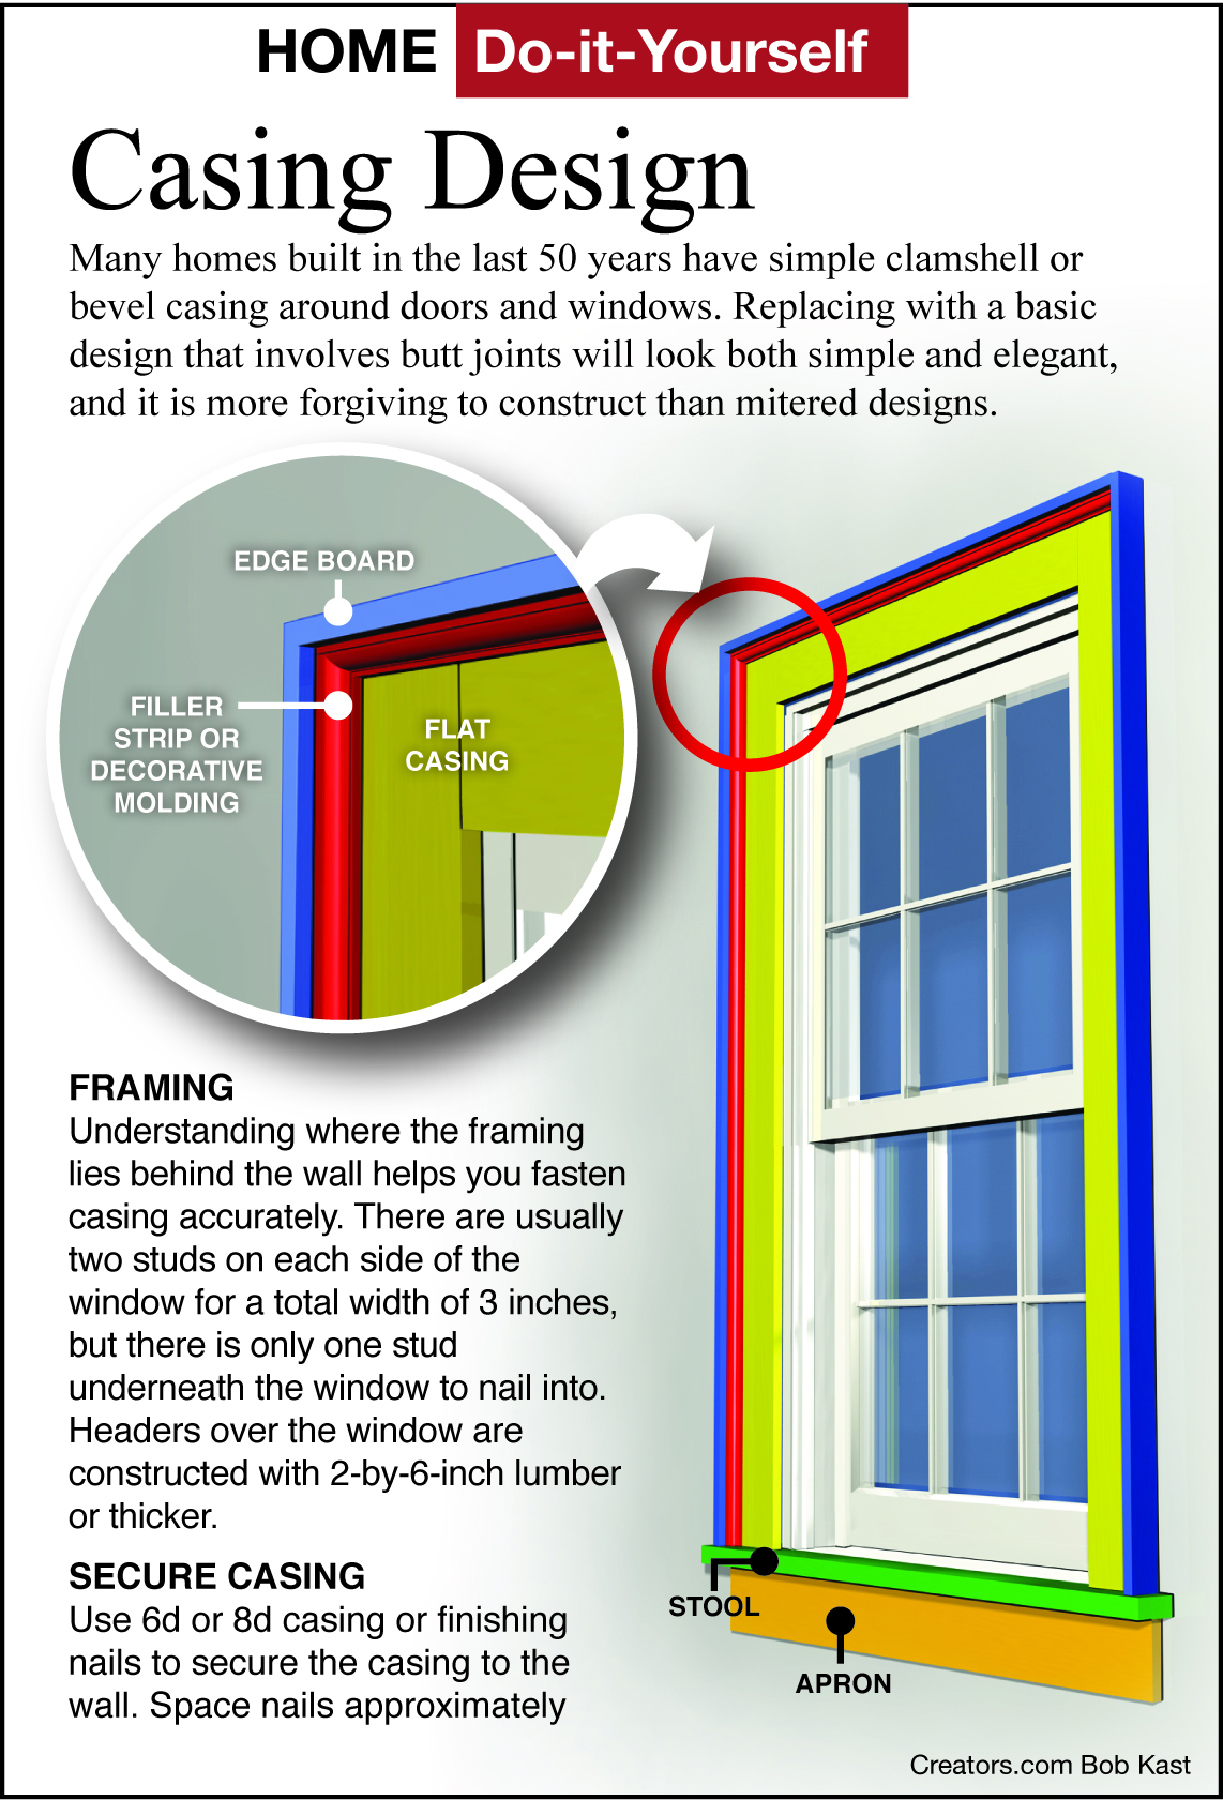 Casing-design-infographic